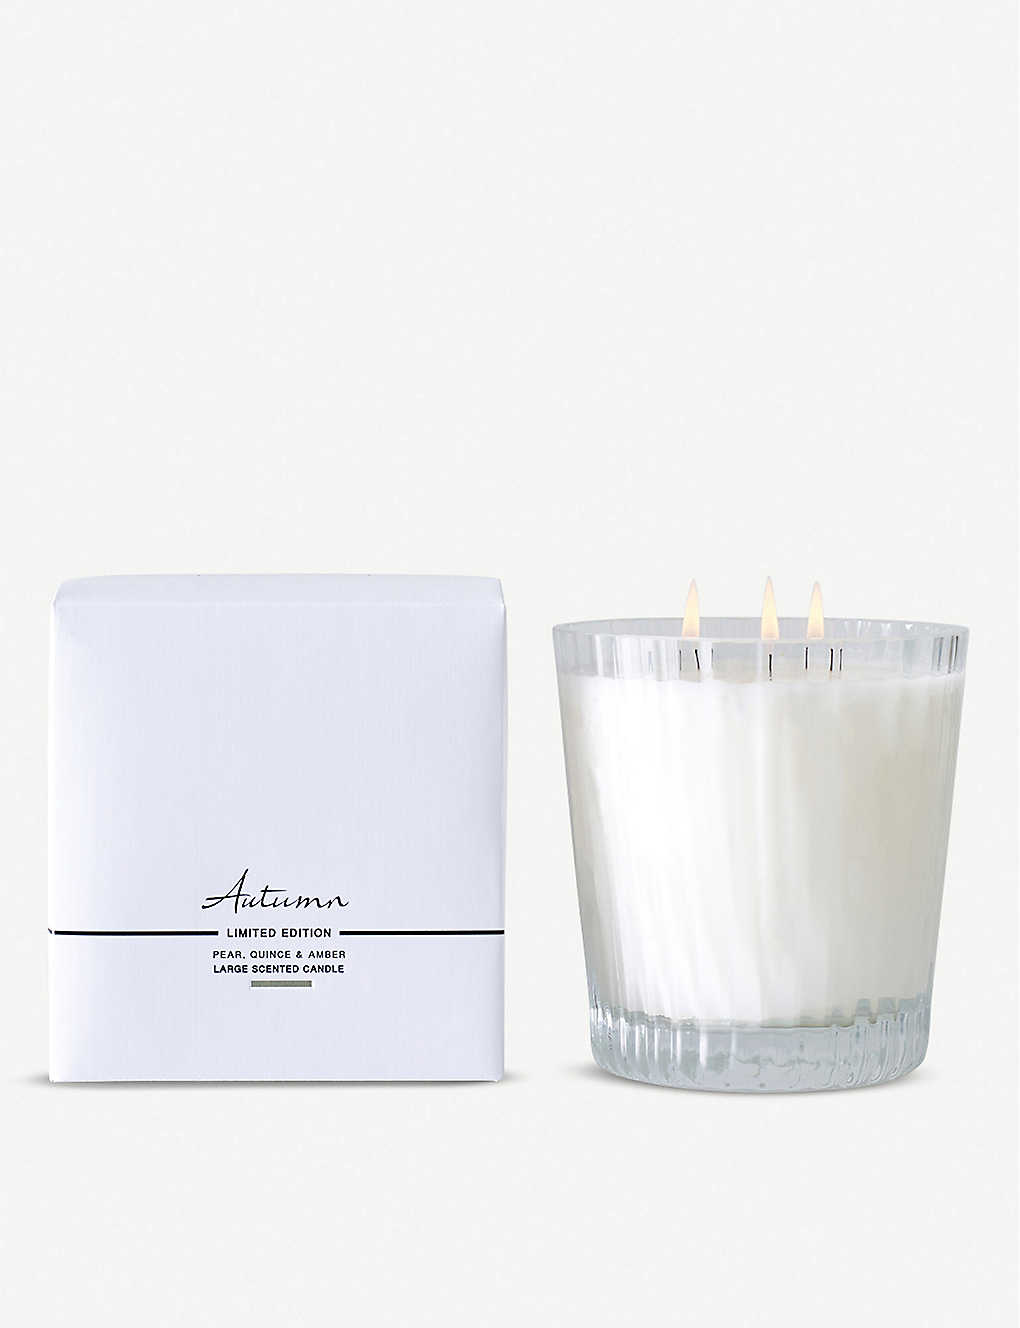 THE WHITE COMPANY: Autumn large mineral wax candle